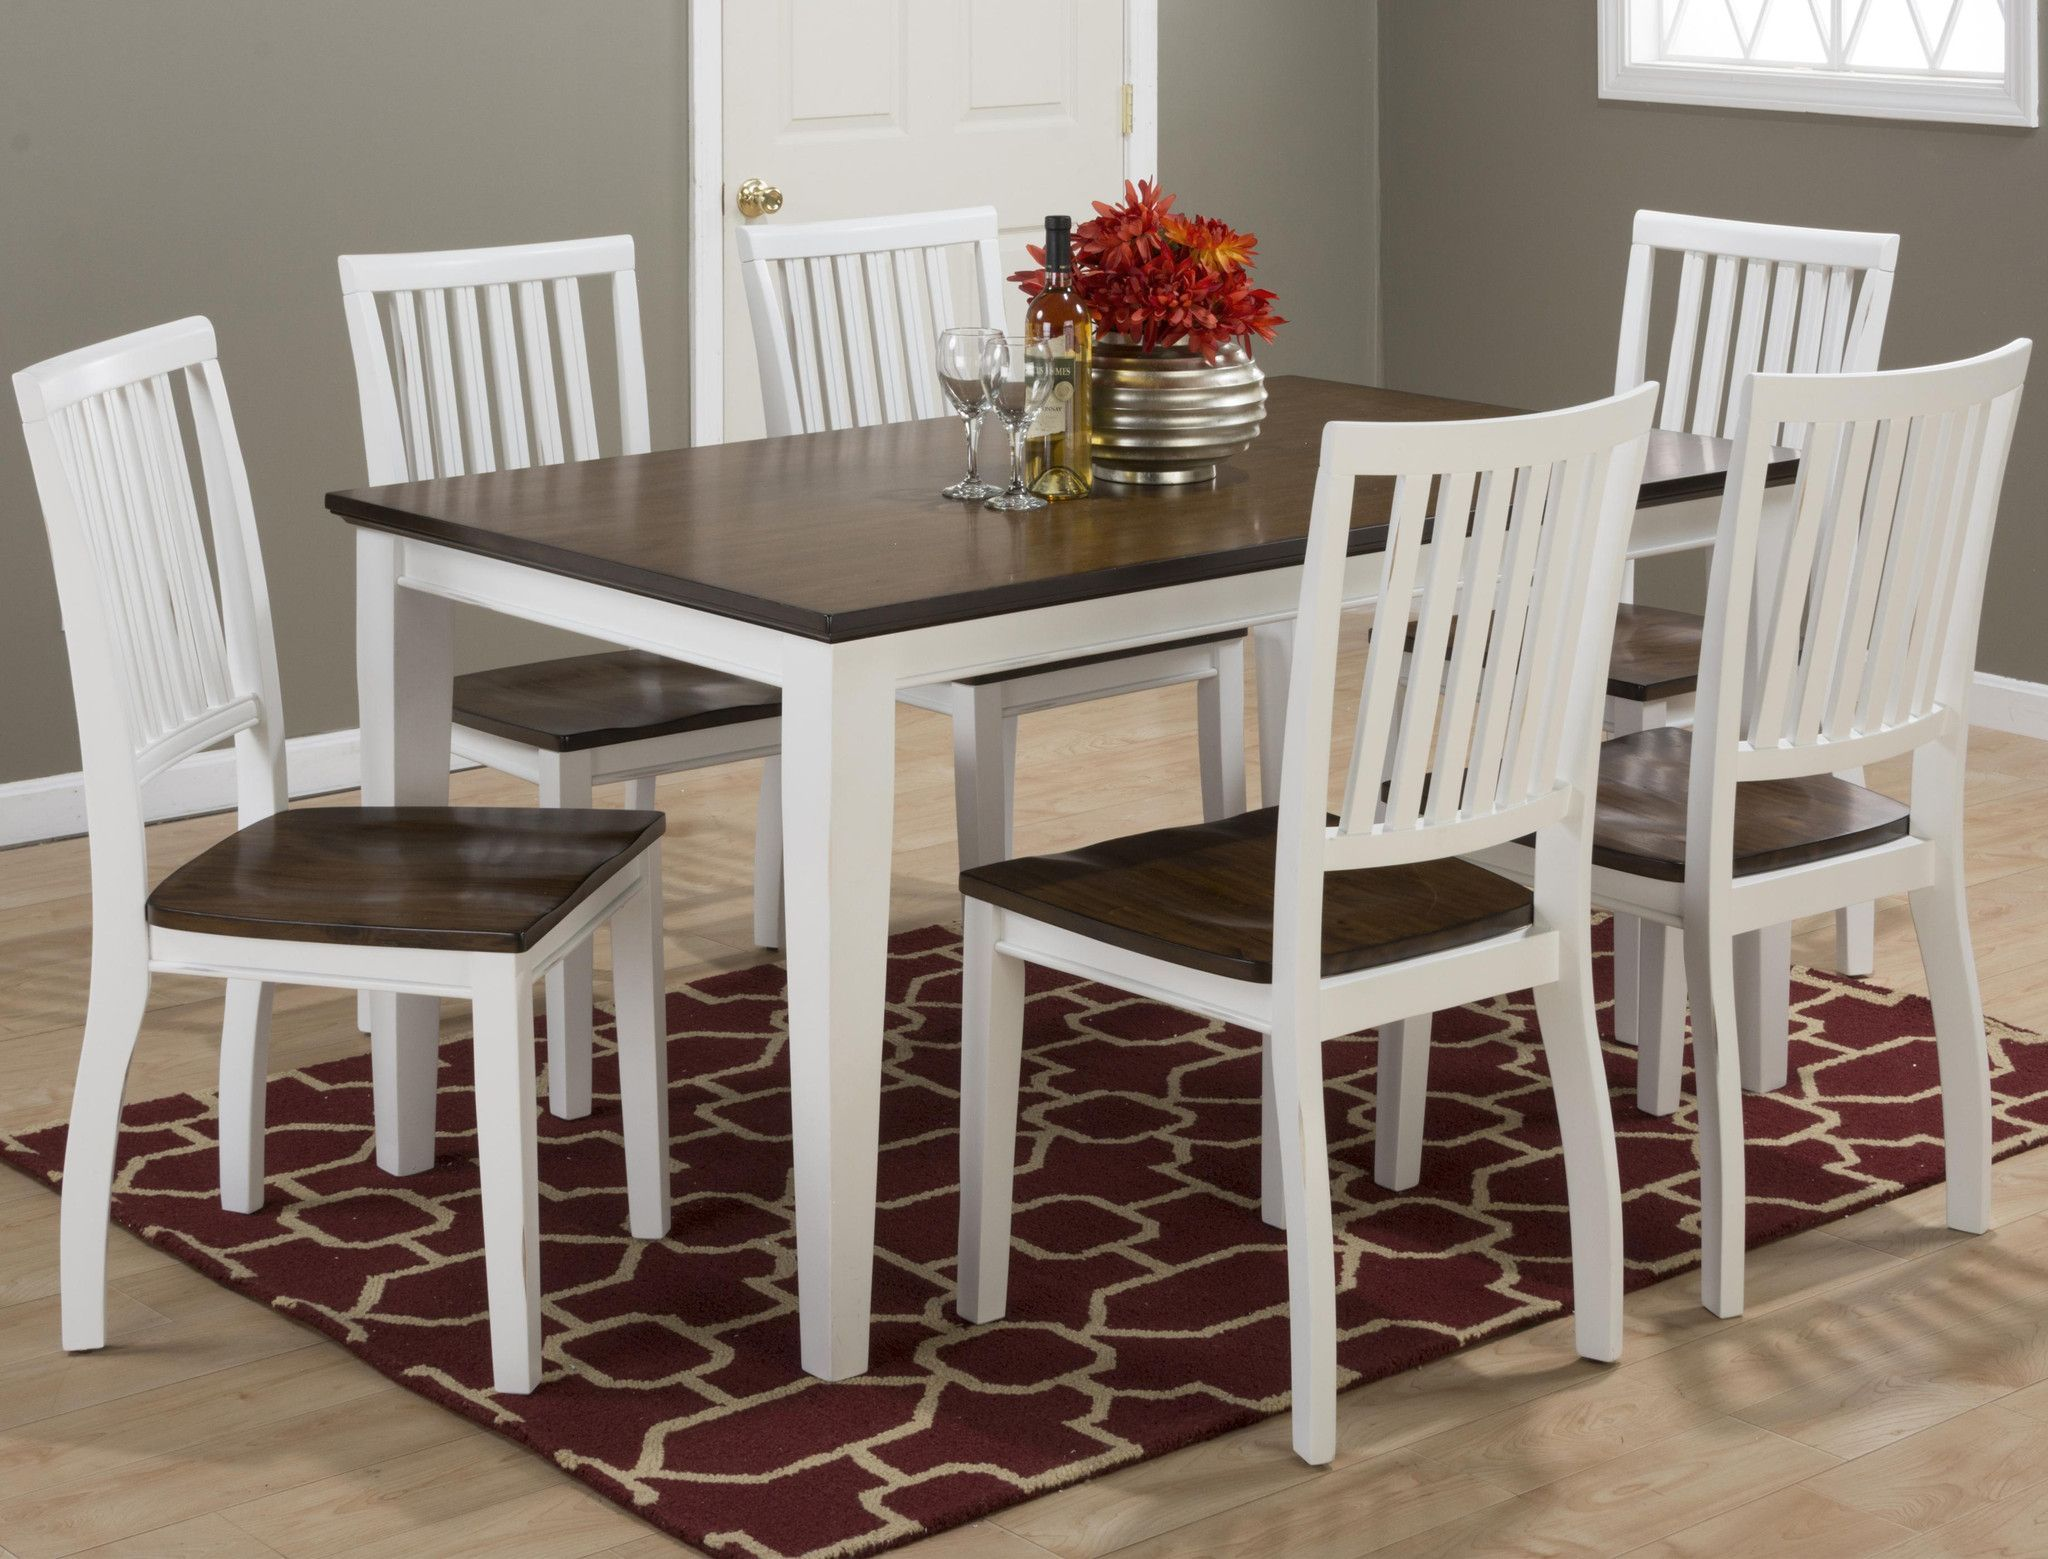 Braden Birch Rectangular 6 Person Dining Table And Chair Set U2013 Adams  Furniture